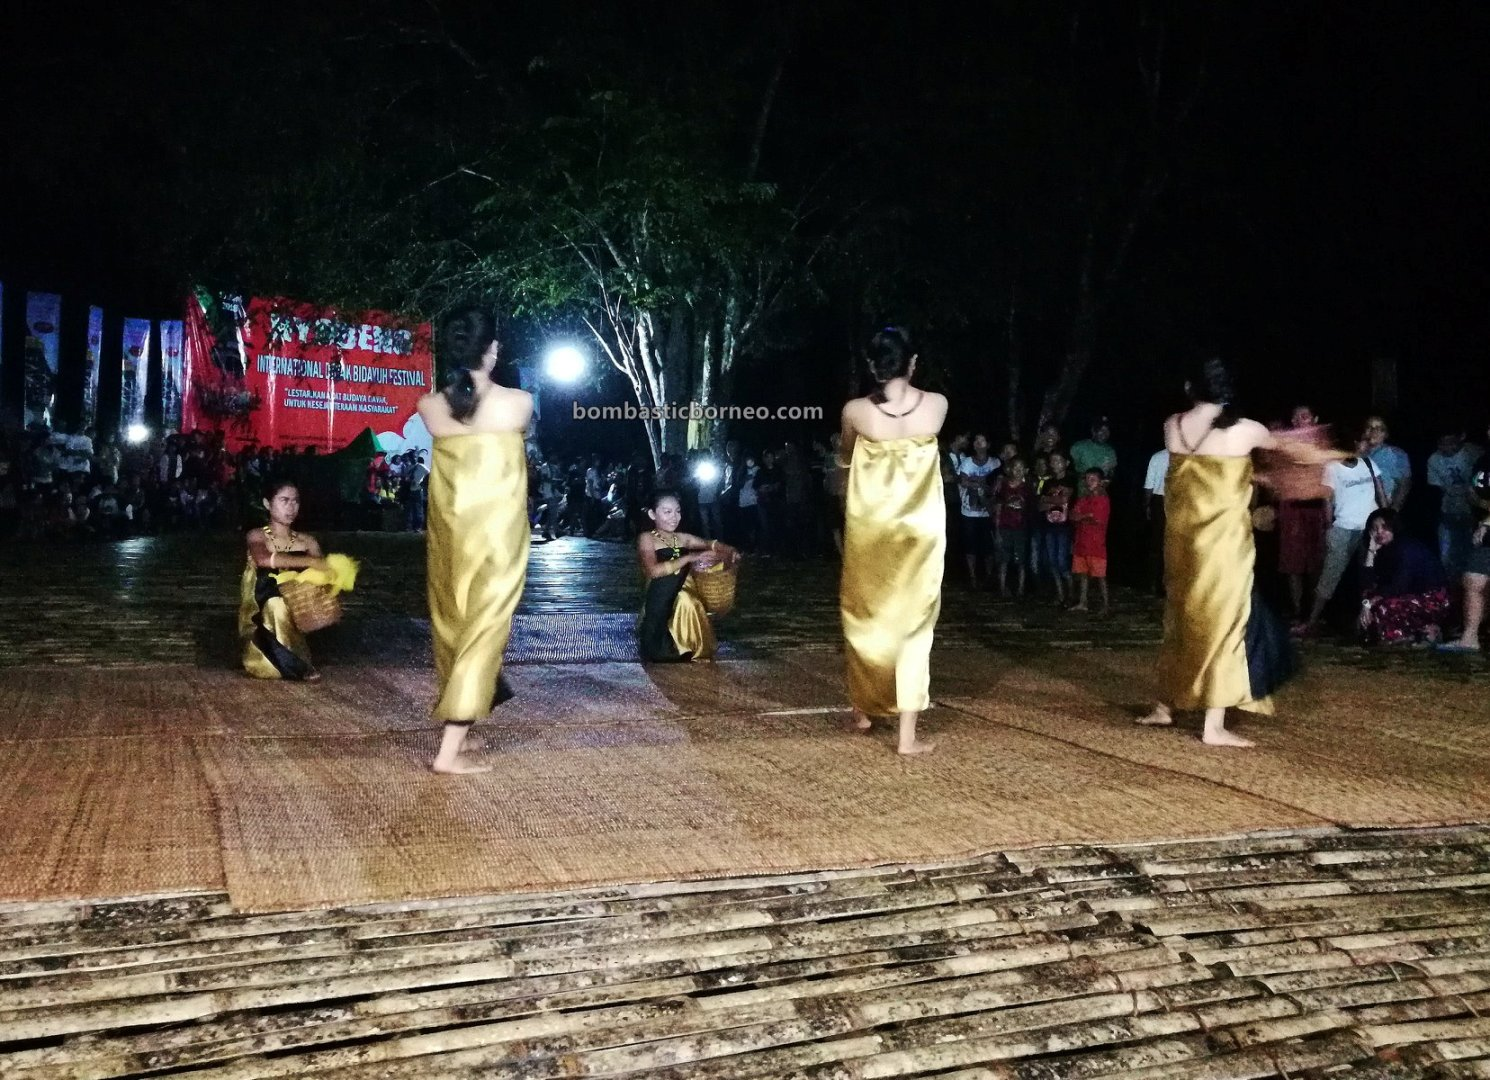 Nyobeng Sebujit, traditional, backpackers, event, Bengkayang, Kalimantan Barat, Desa Hli Buei, Dayak Bidayuh, native, tribe, Tourism, travel guide, Cross Border, Borneo, 印尼西加里曼丹丰收节, 婆罗洲达雅比达友族